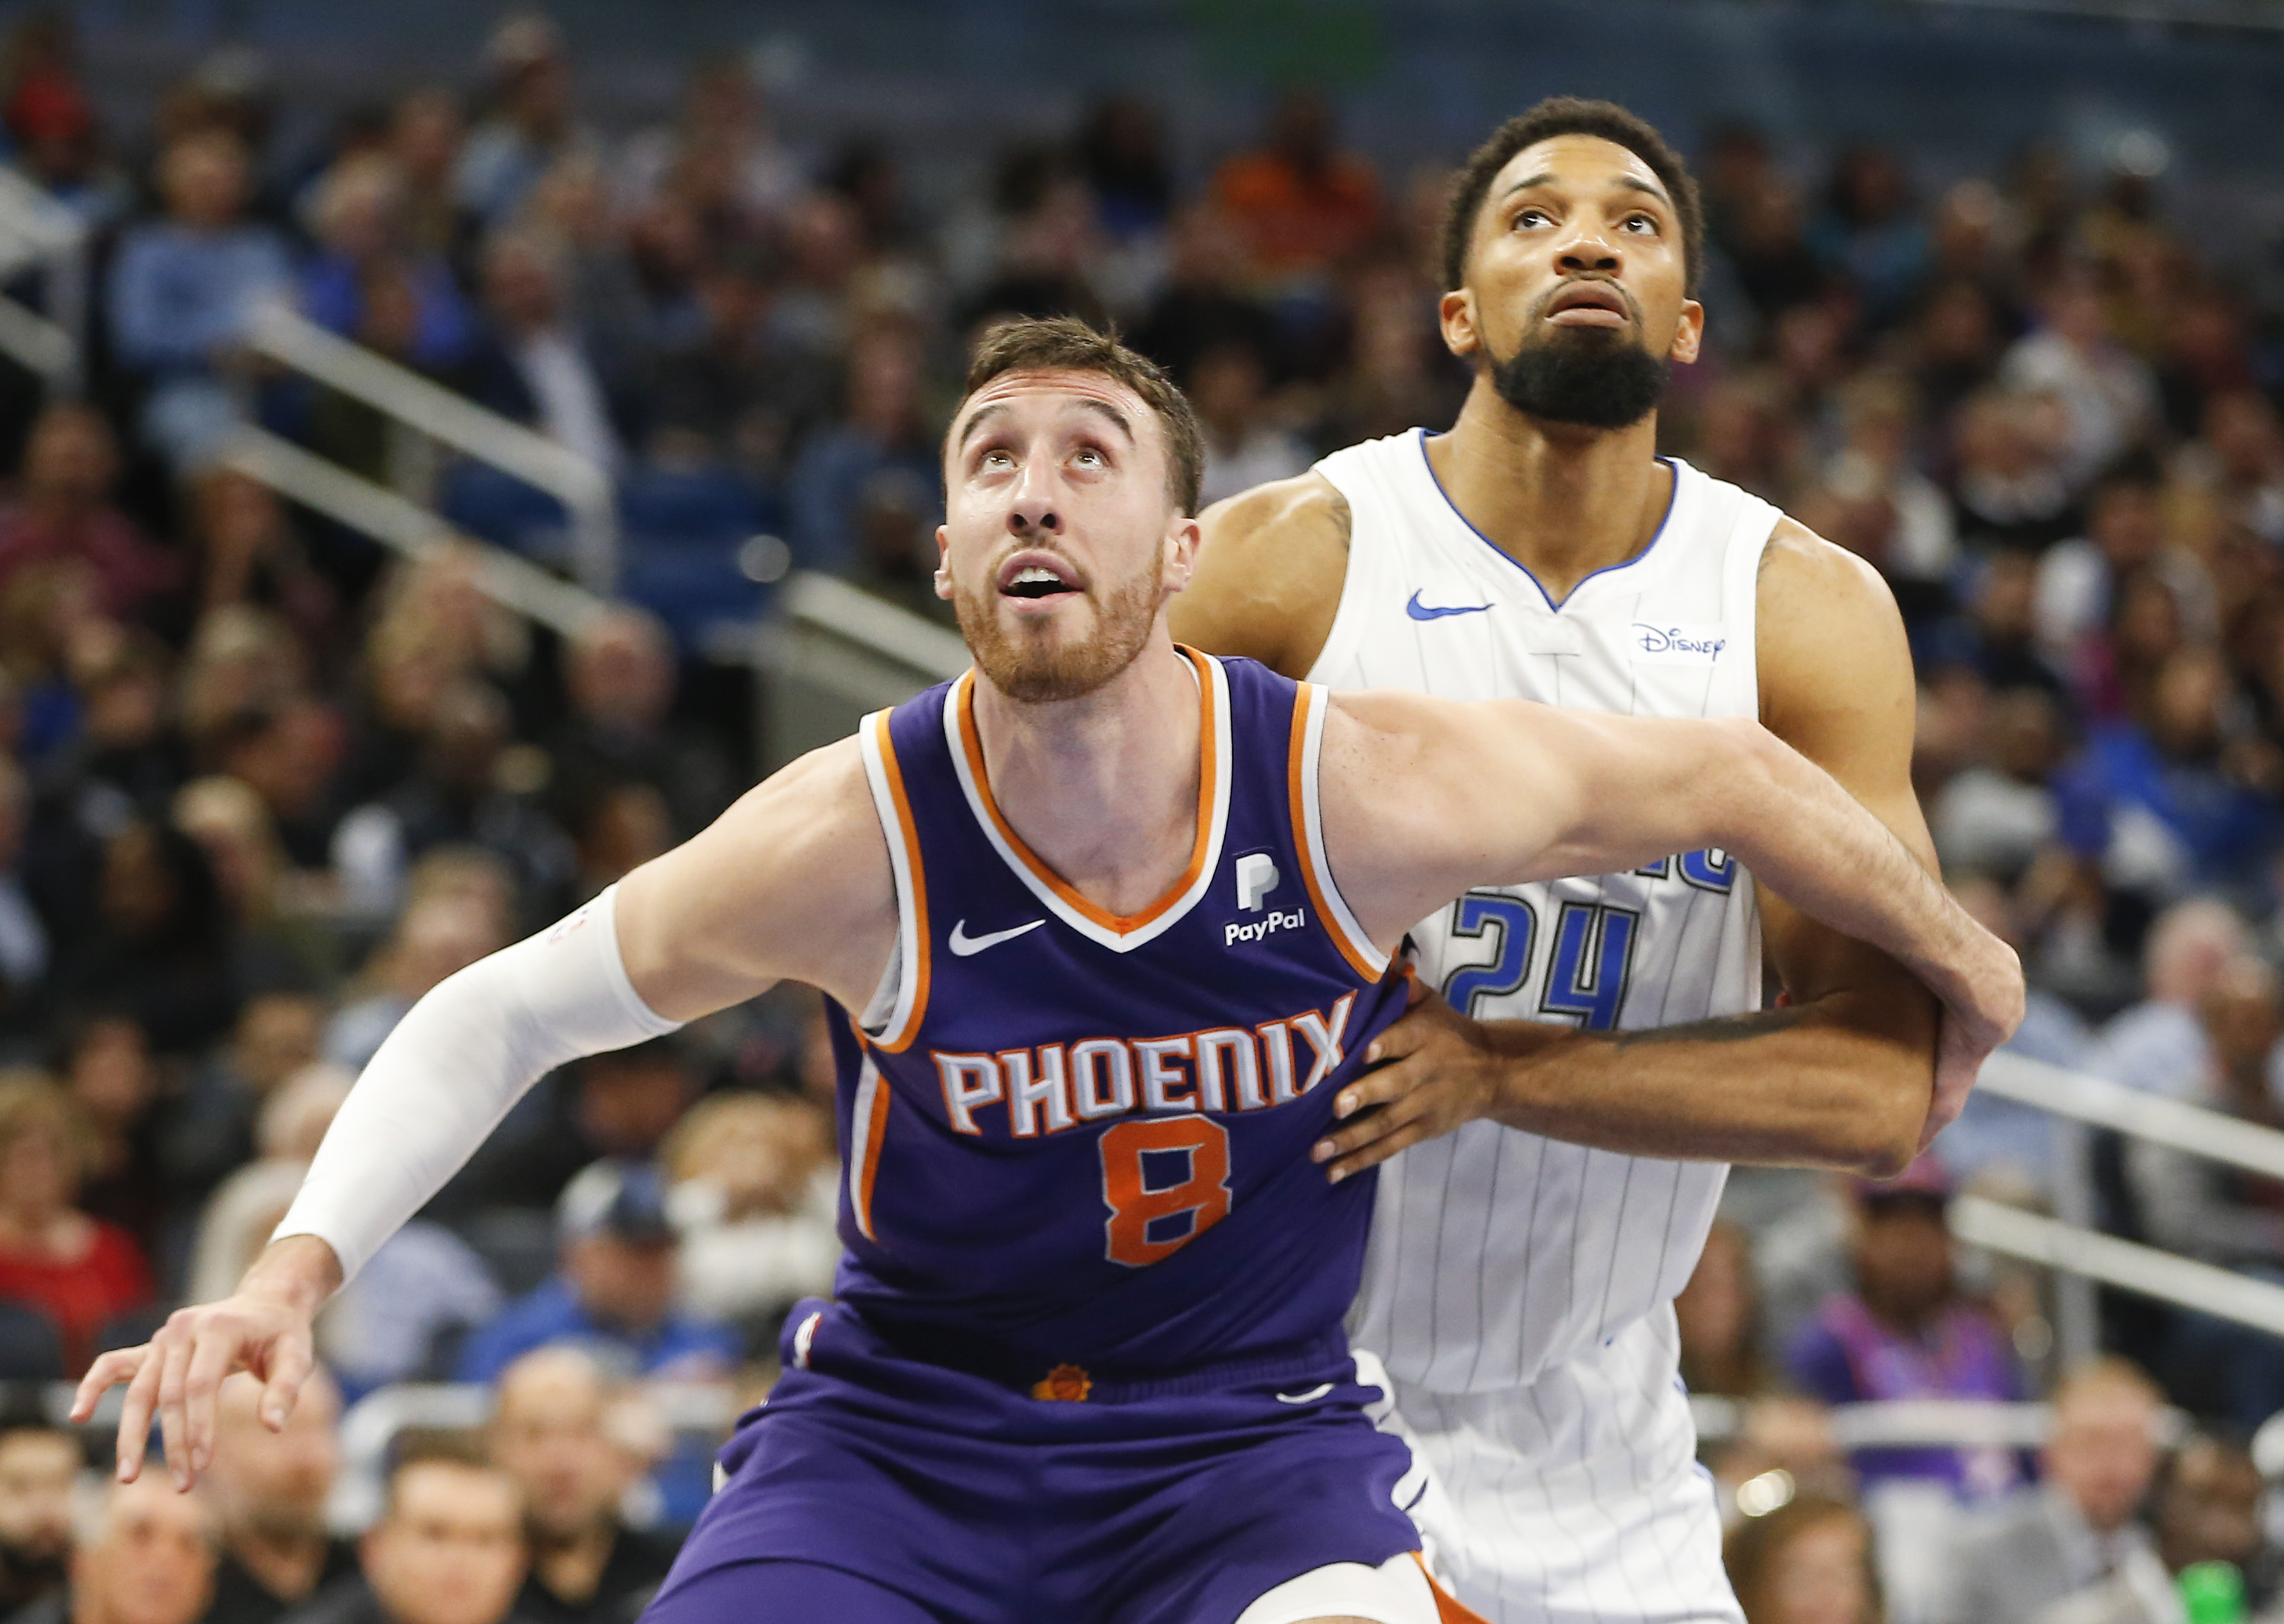 NBA: Phoenix Suns at Orlando Magic